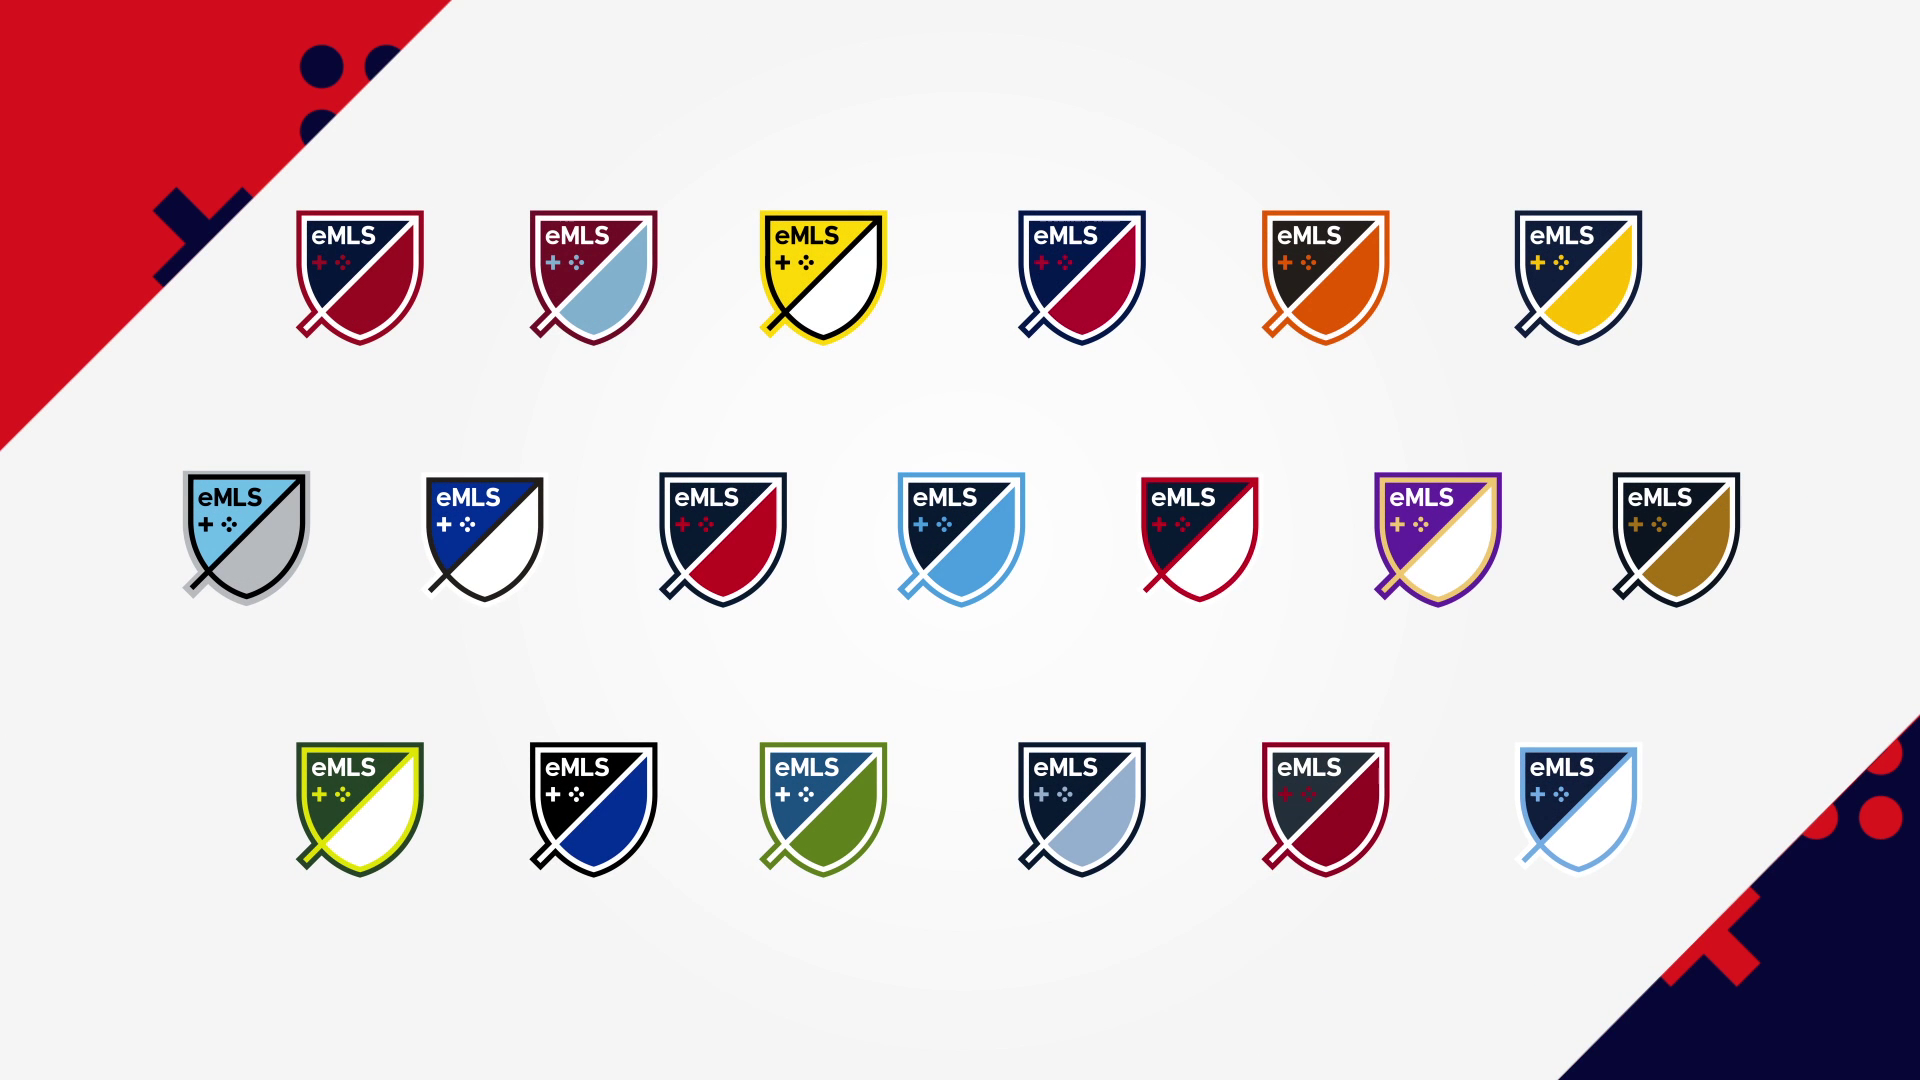 MLS Enters Esports, Launches eMLS FIFA 18 League With EA Sports